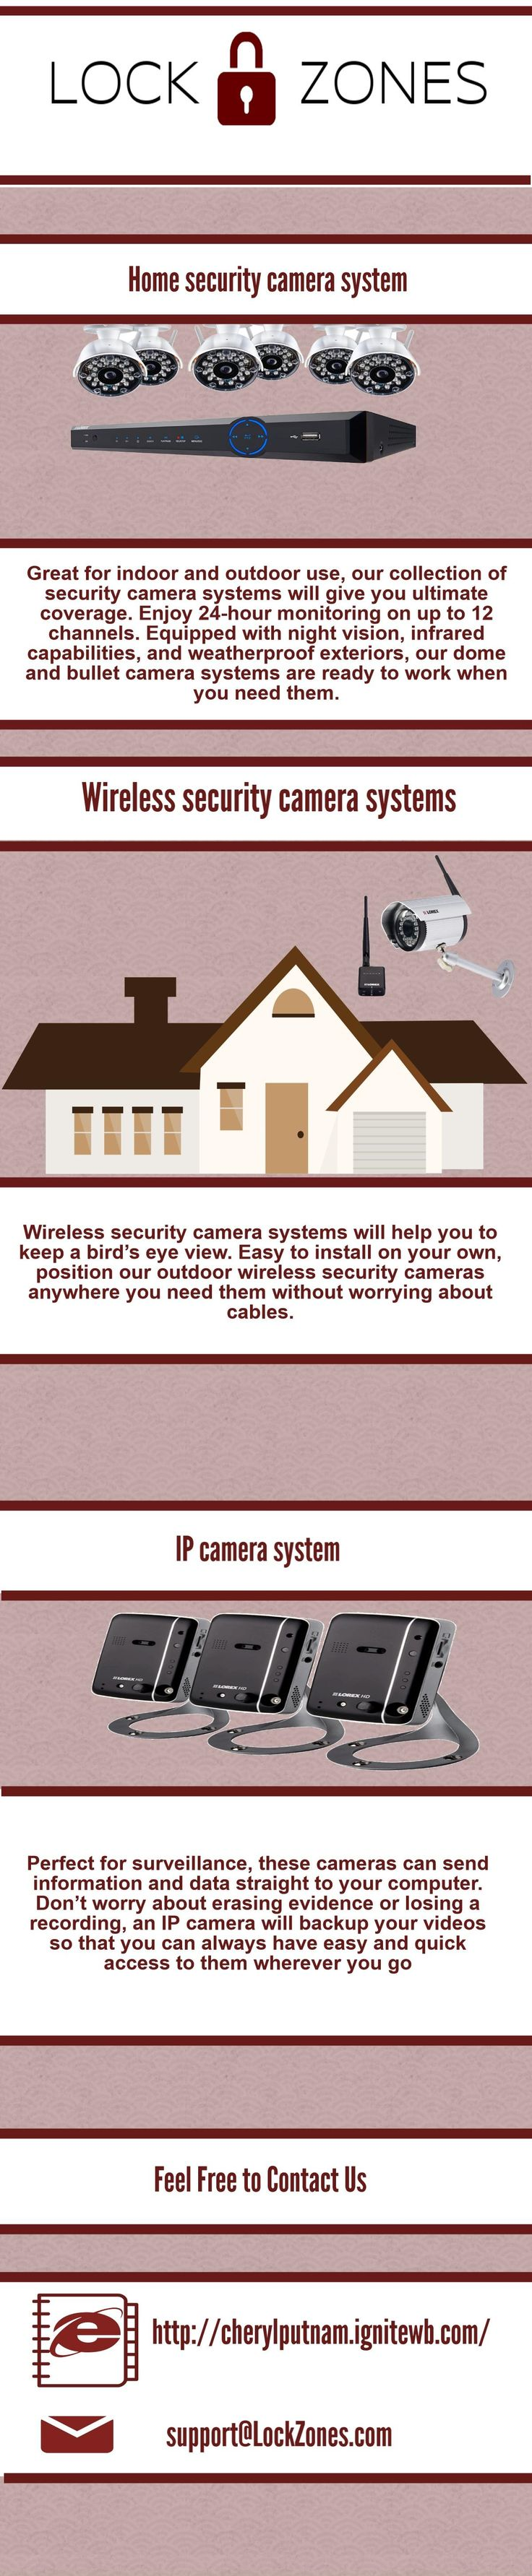 Home security camera systems can involve many camera systems like fixed video cameras, wireless security camera systems as well as other technologies that serve your unique needs and purpose.